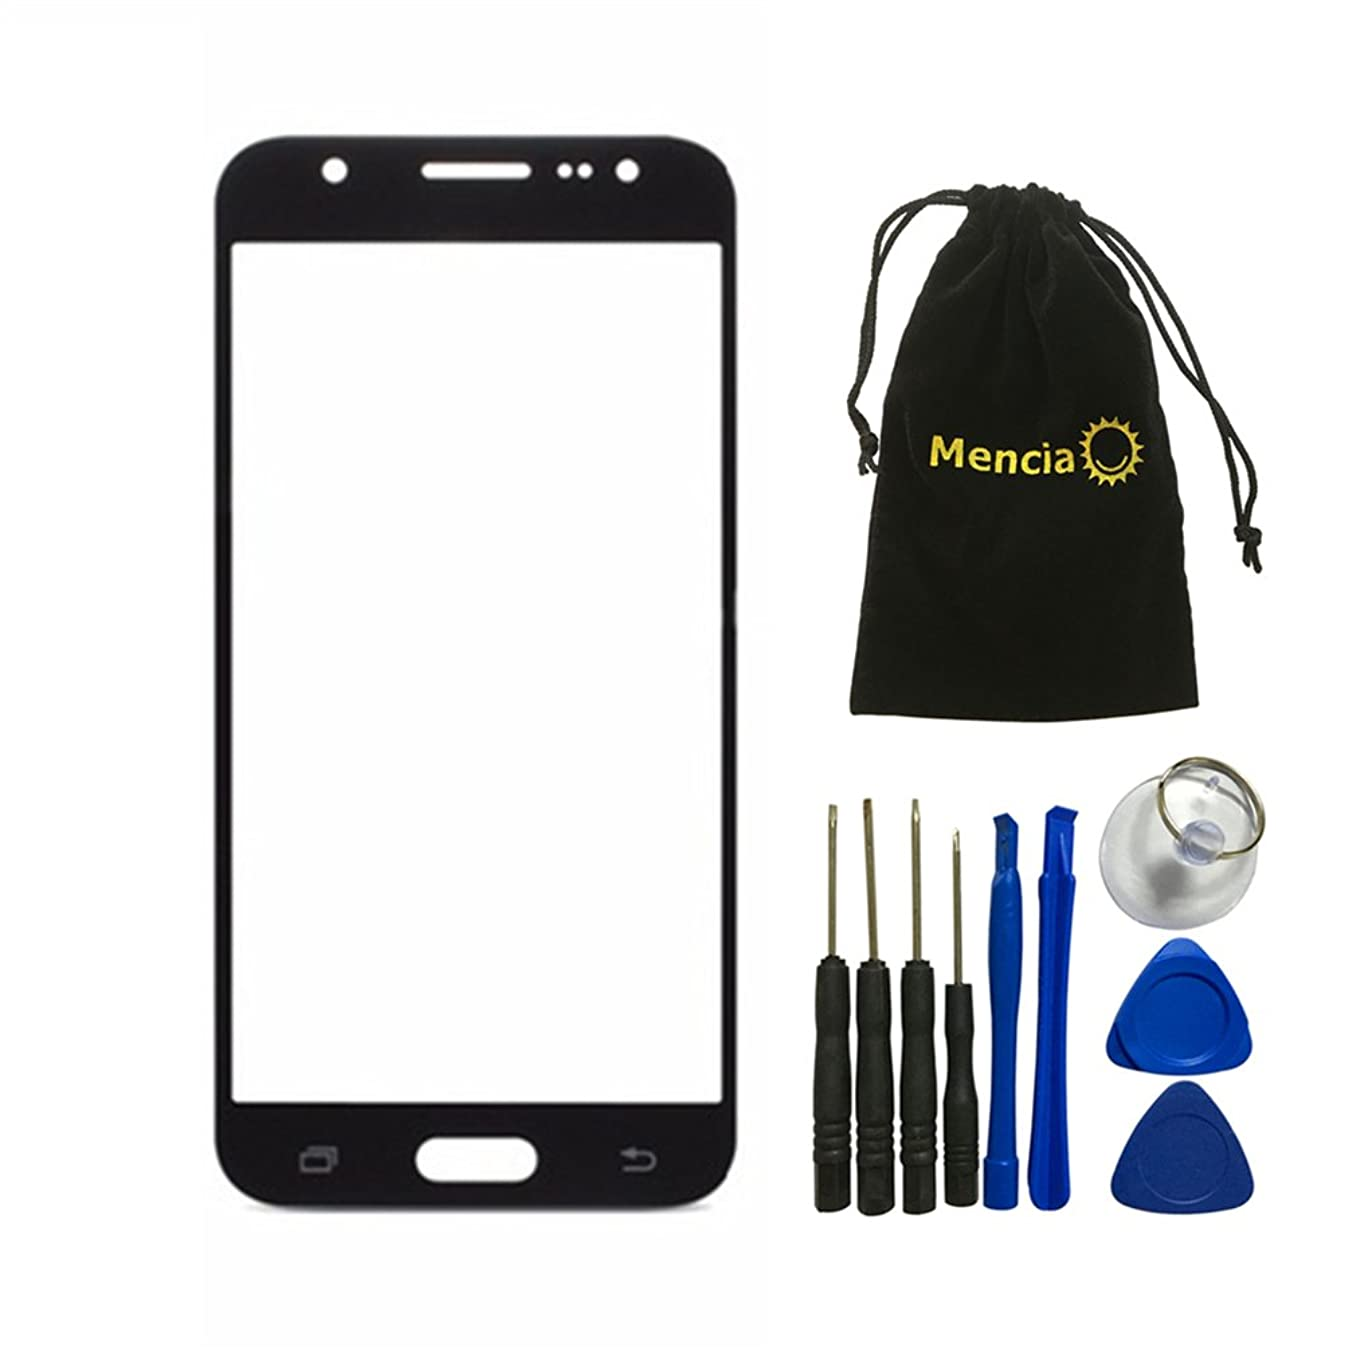 Mencia Glass Lens Screen Replacement For Samsung Galaxy J5 J500 J500F J5008 With Opening Tools(Black)